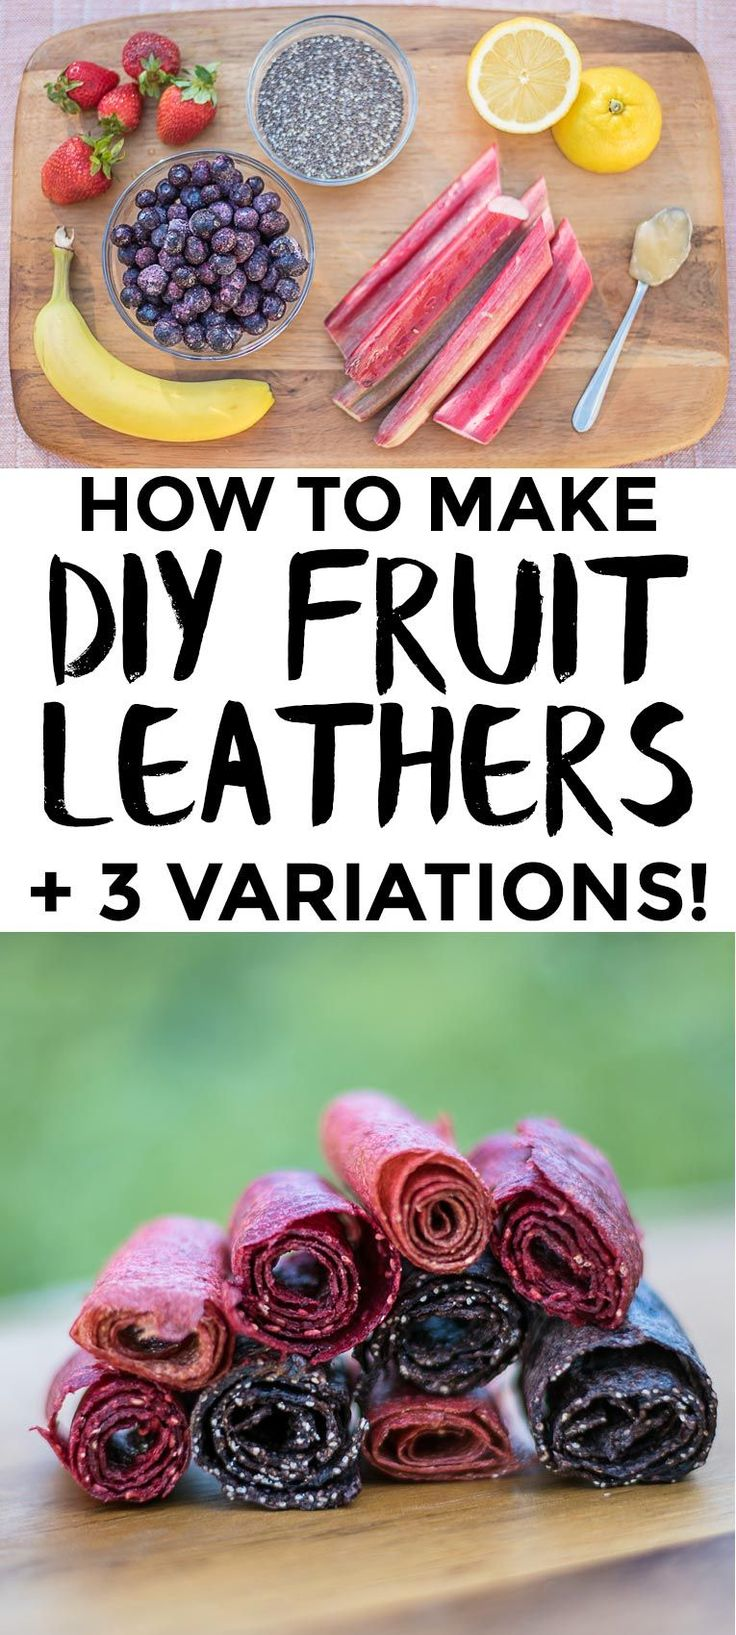 3 easy Fruit Leather recipes to make in a dehydrator. Strawberry Rhubarb, Blueberry Banana & Chia Seed, and Raspberry Peach. These make great hiking snacks for a day outdoors! Naturally sweetened, Vegan + Gluten free